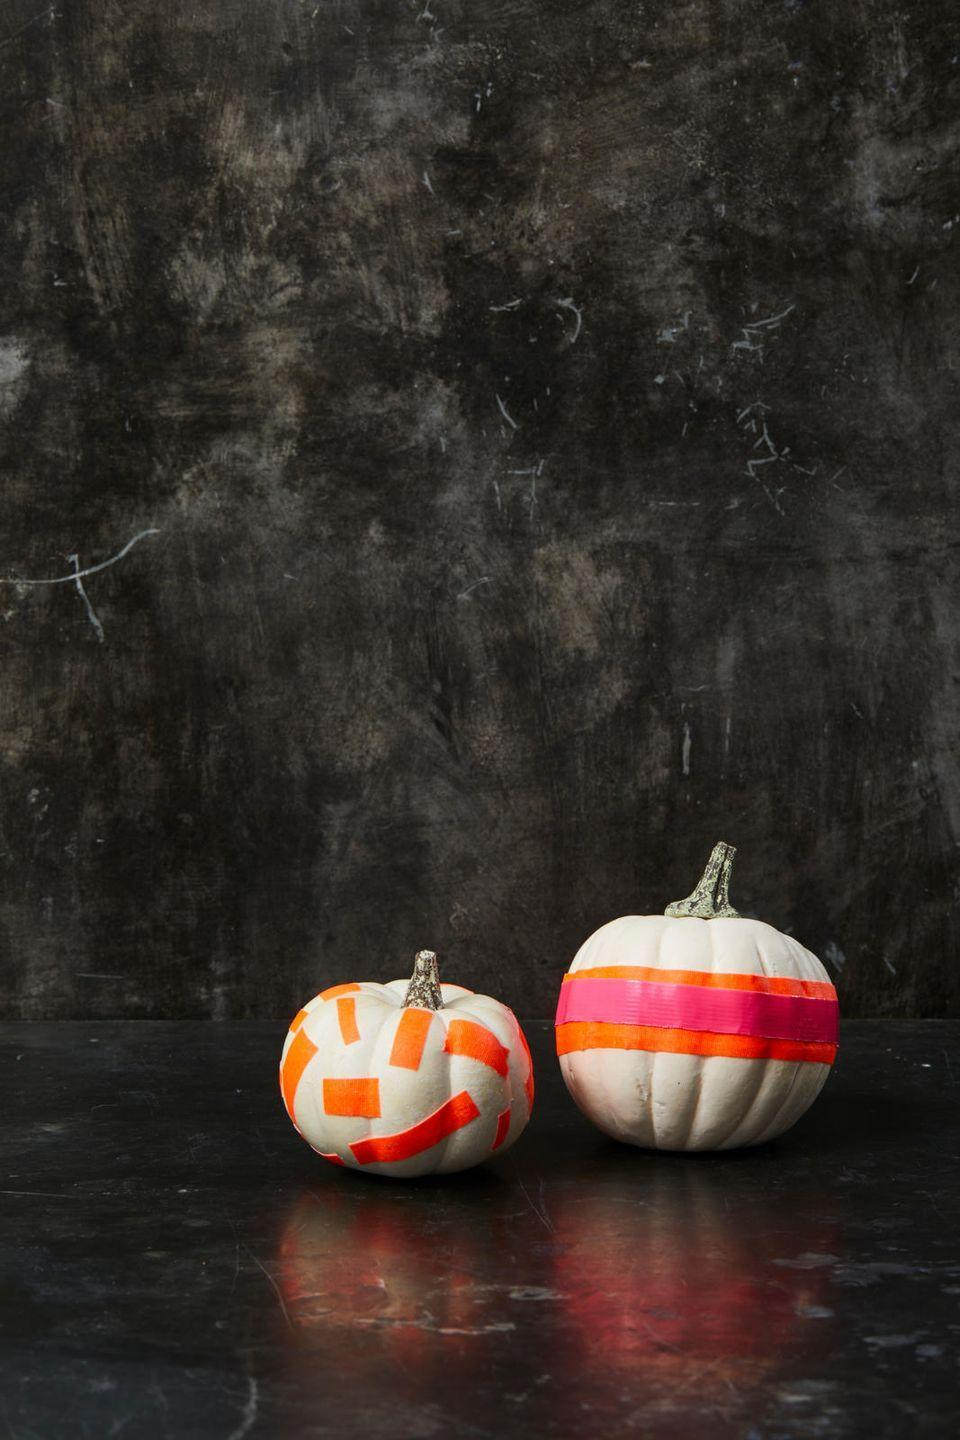 "<p>These pumpkins are instant attention-grabbers, and making them is a snap. Simply cut pieces of neon tape (including blacklight tape if you want!) and stick them onto a white or painted pumpkin. </p><p><a class=""link rapid-noclick-resp"" href=""https://www.amazon.com/5-Pack-BRIGHT-Blacklight-Reactive-Fluorescent/dp/B01CW3LH6I/ref=asc_df_B01CW3LH6I/?tag=syn-yahoo-20&ascsubtag=%5Bartid%7C10055.g.1714%5Bsrc%7Cyahoo-us"" rel=""nofollow noopener"" target=""_blank"" data-ylk=""slk:SHOP NEON TAPE"">SHOP NEON TAPE</a></p>"